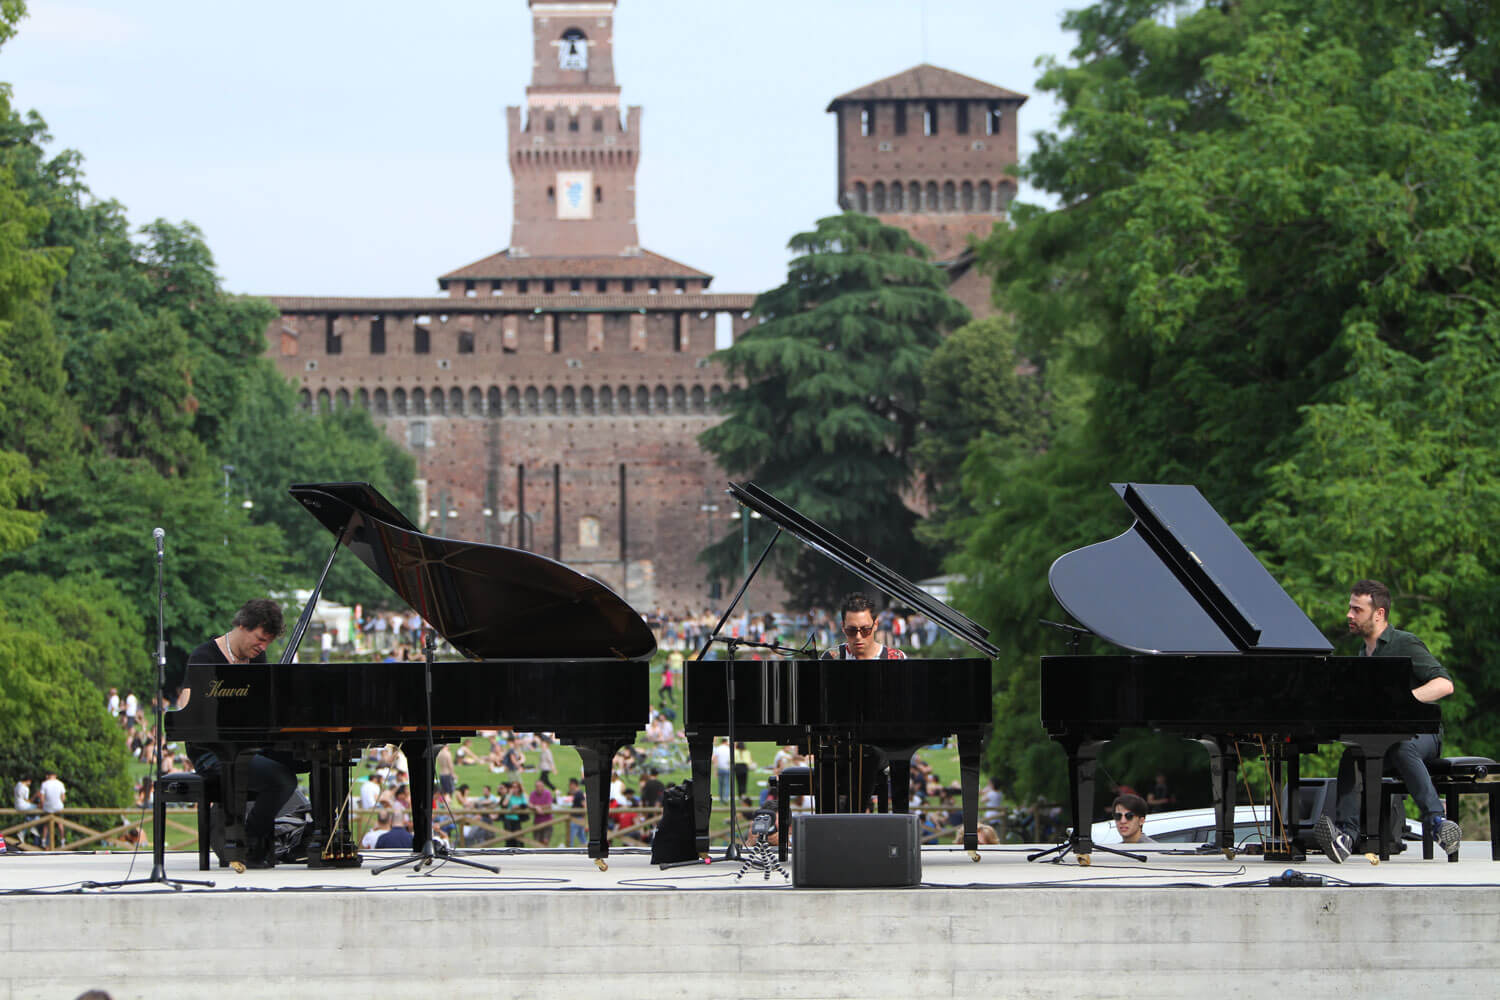 Piano City Milano Castello Sf PIANO CITY MILANO 2019